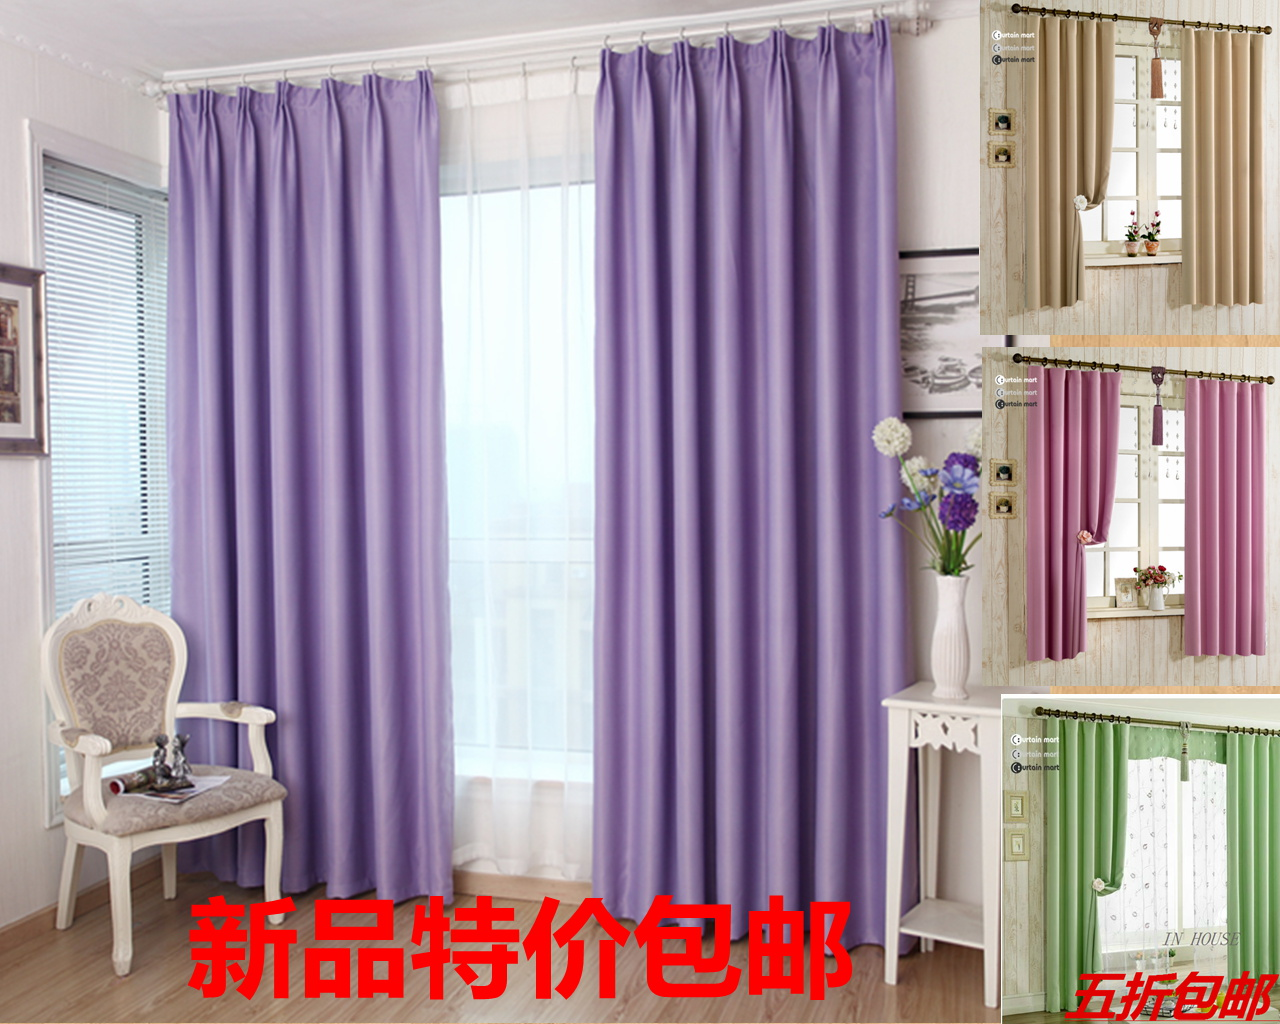 purple curtains living room 2016 new curtains for living room window curtain modern 14731